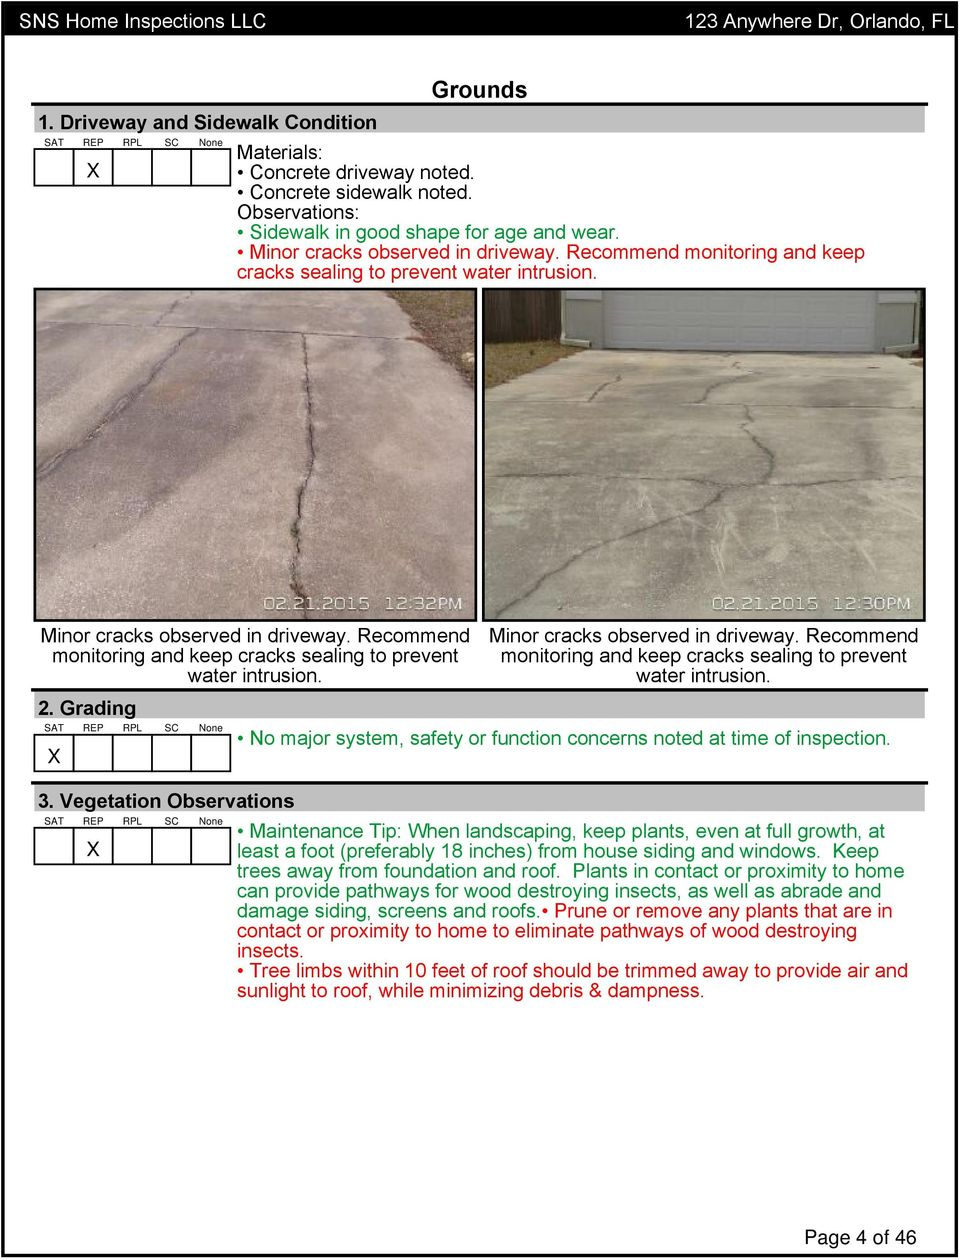 Grading Minor cracks observed in driveway. Recommend monitoring and keep cracks sealing to prevent water intrusion. No major system, safety or function concerns noted at time of inspection. 3.